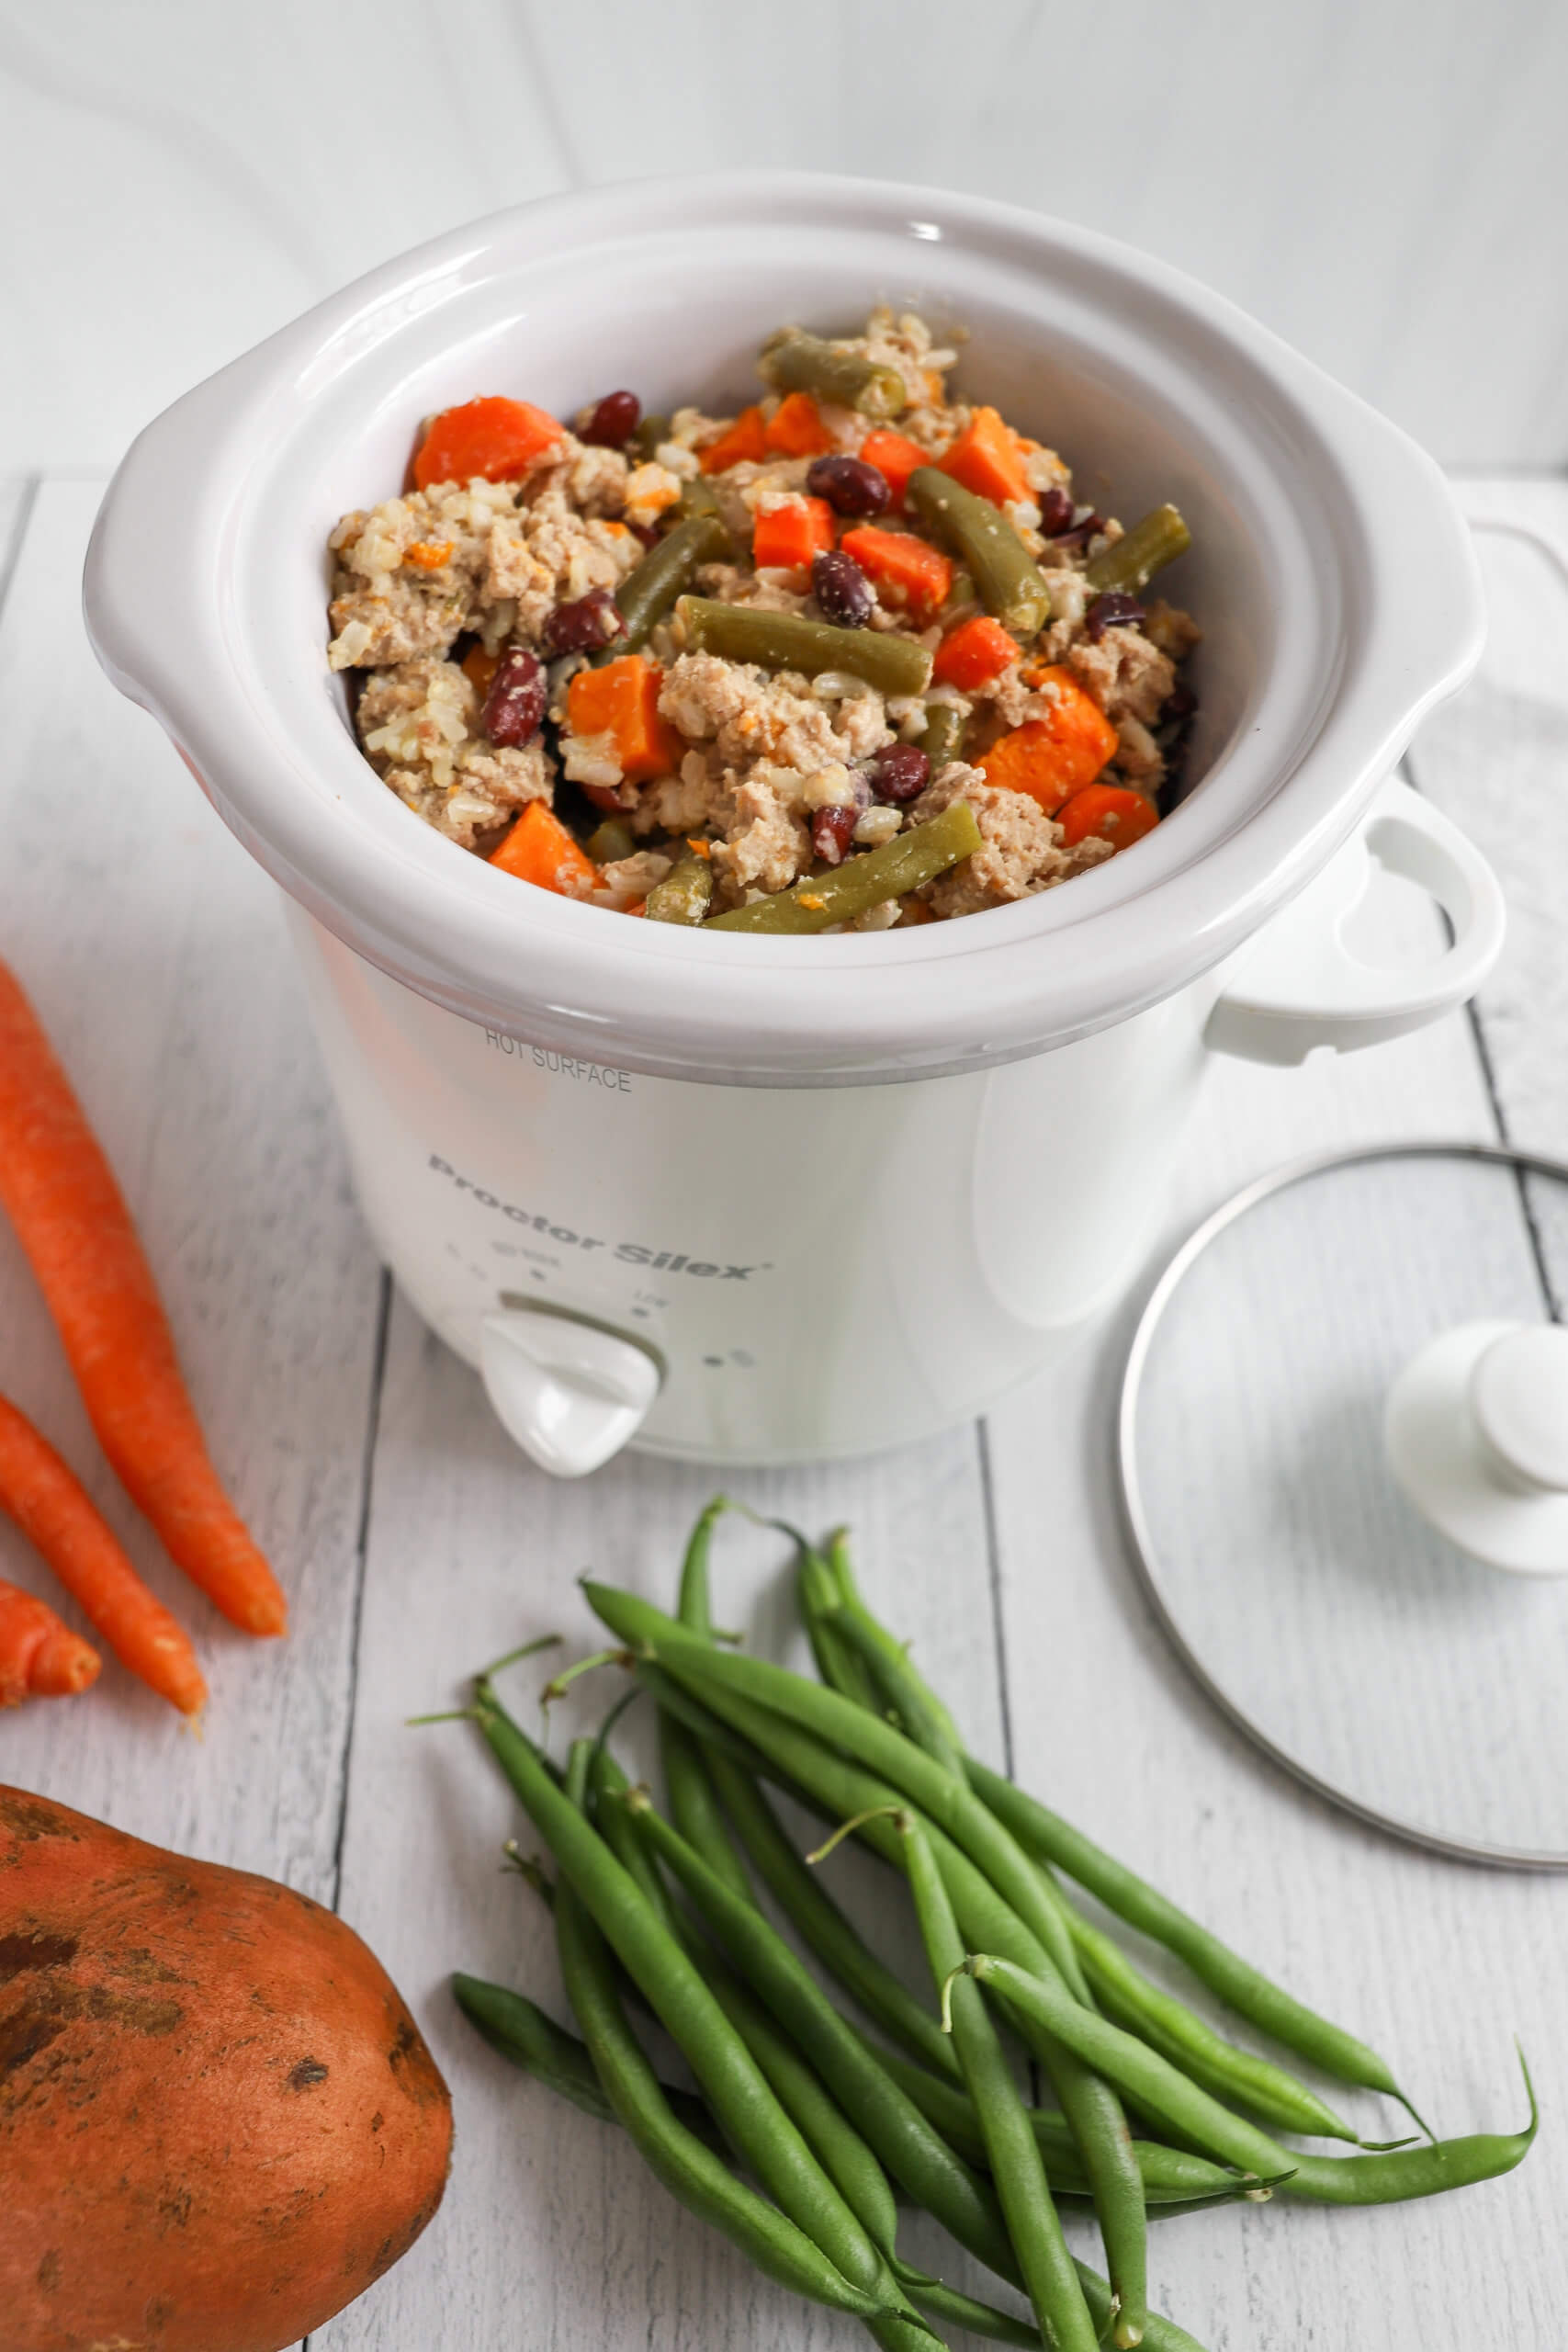 Slow Cooker Dog Food with Ground Turkey and Veggies